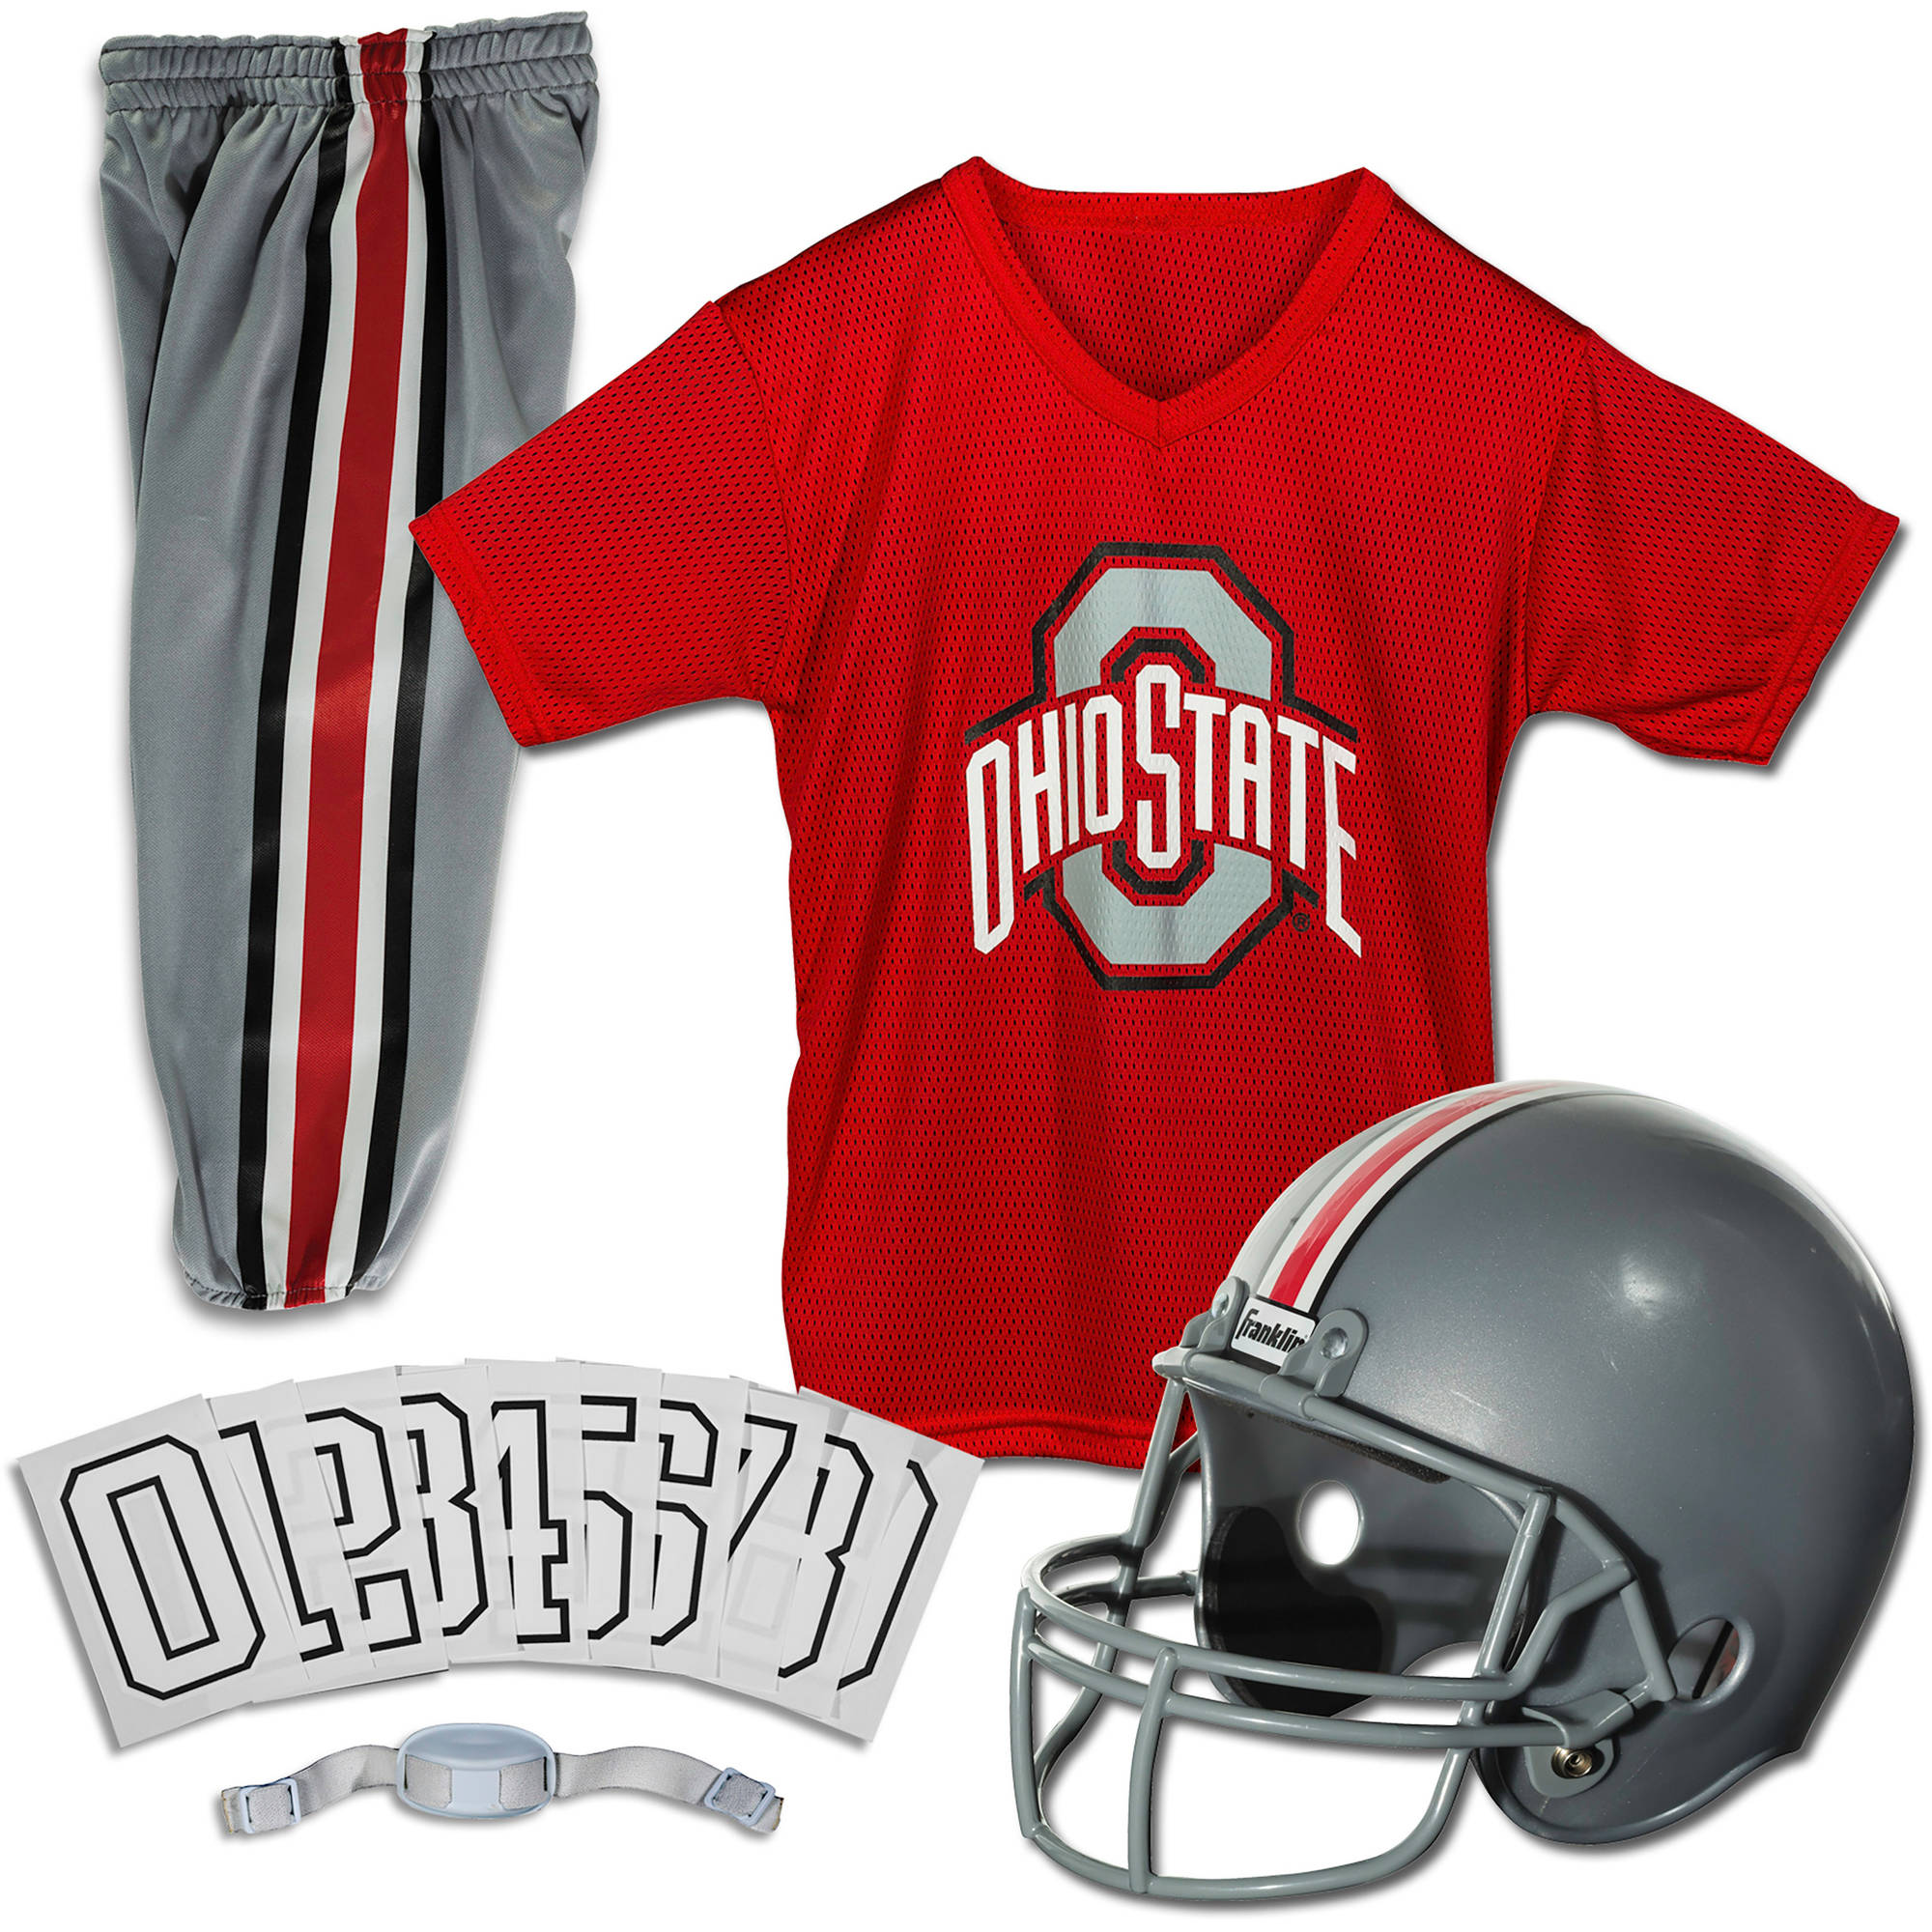 Franklin Sports NCAA Ohio State Buckeyes Uniform Set, Medium